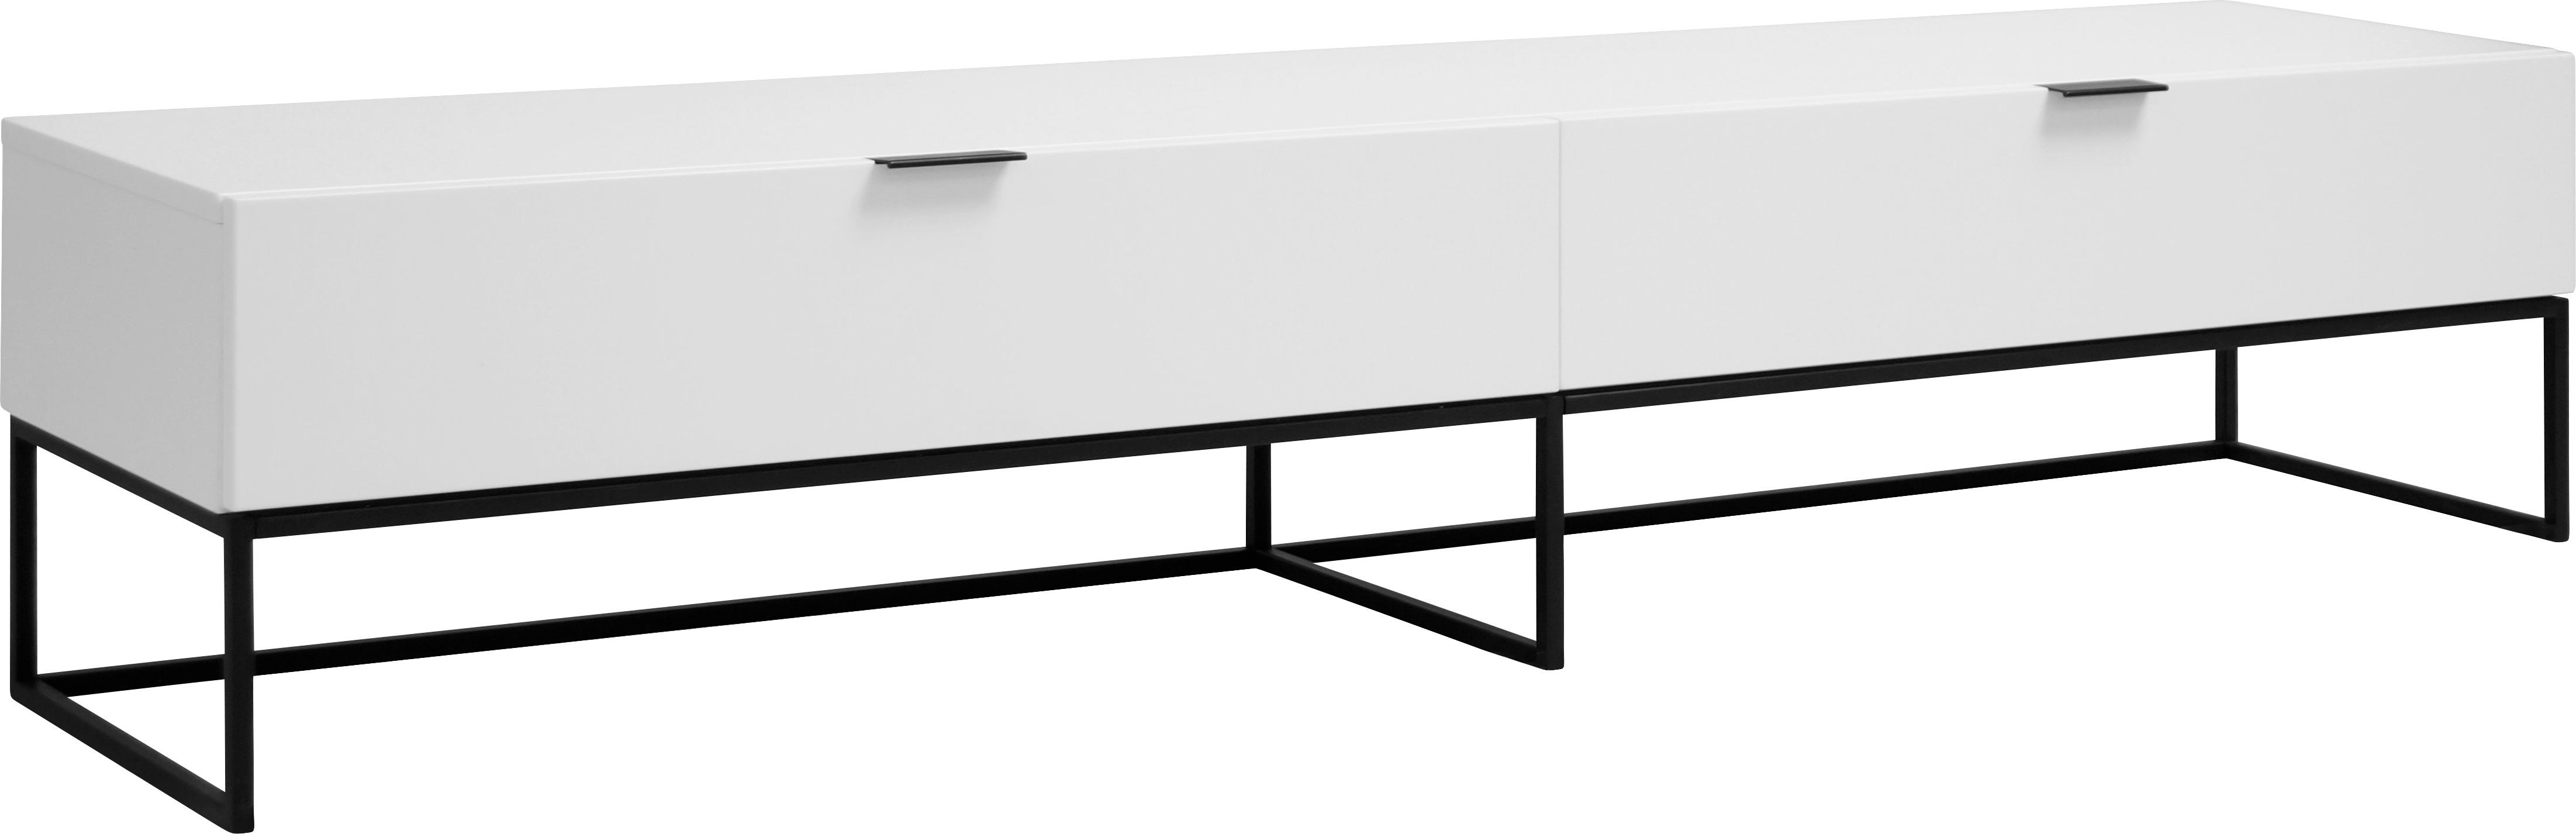 Mueble TV Kobe, Blanco, negro, An 200 x Al 40 cm